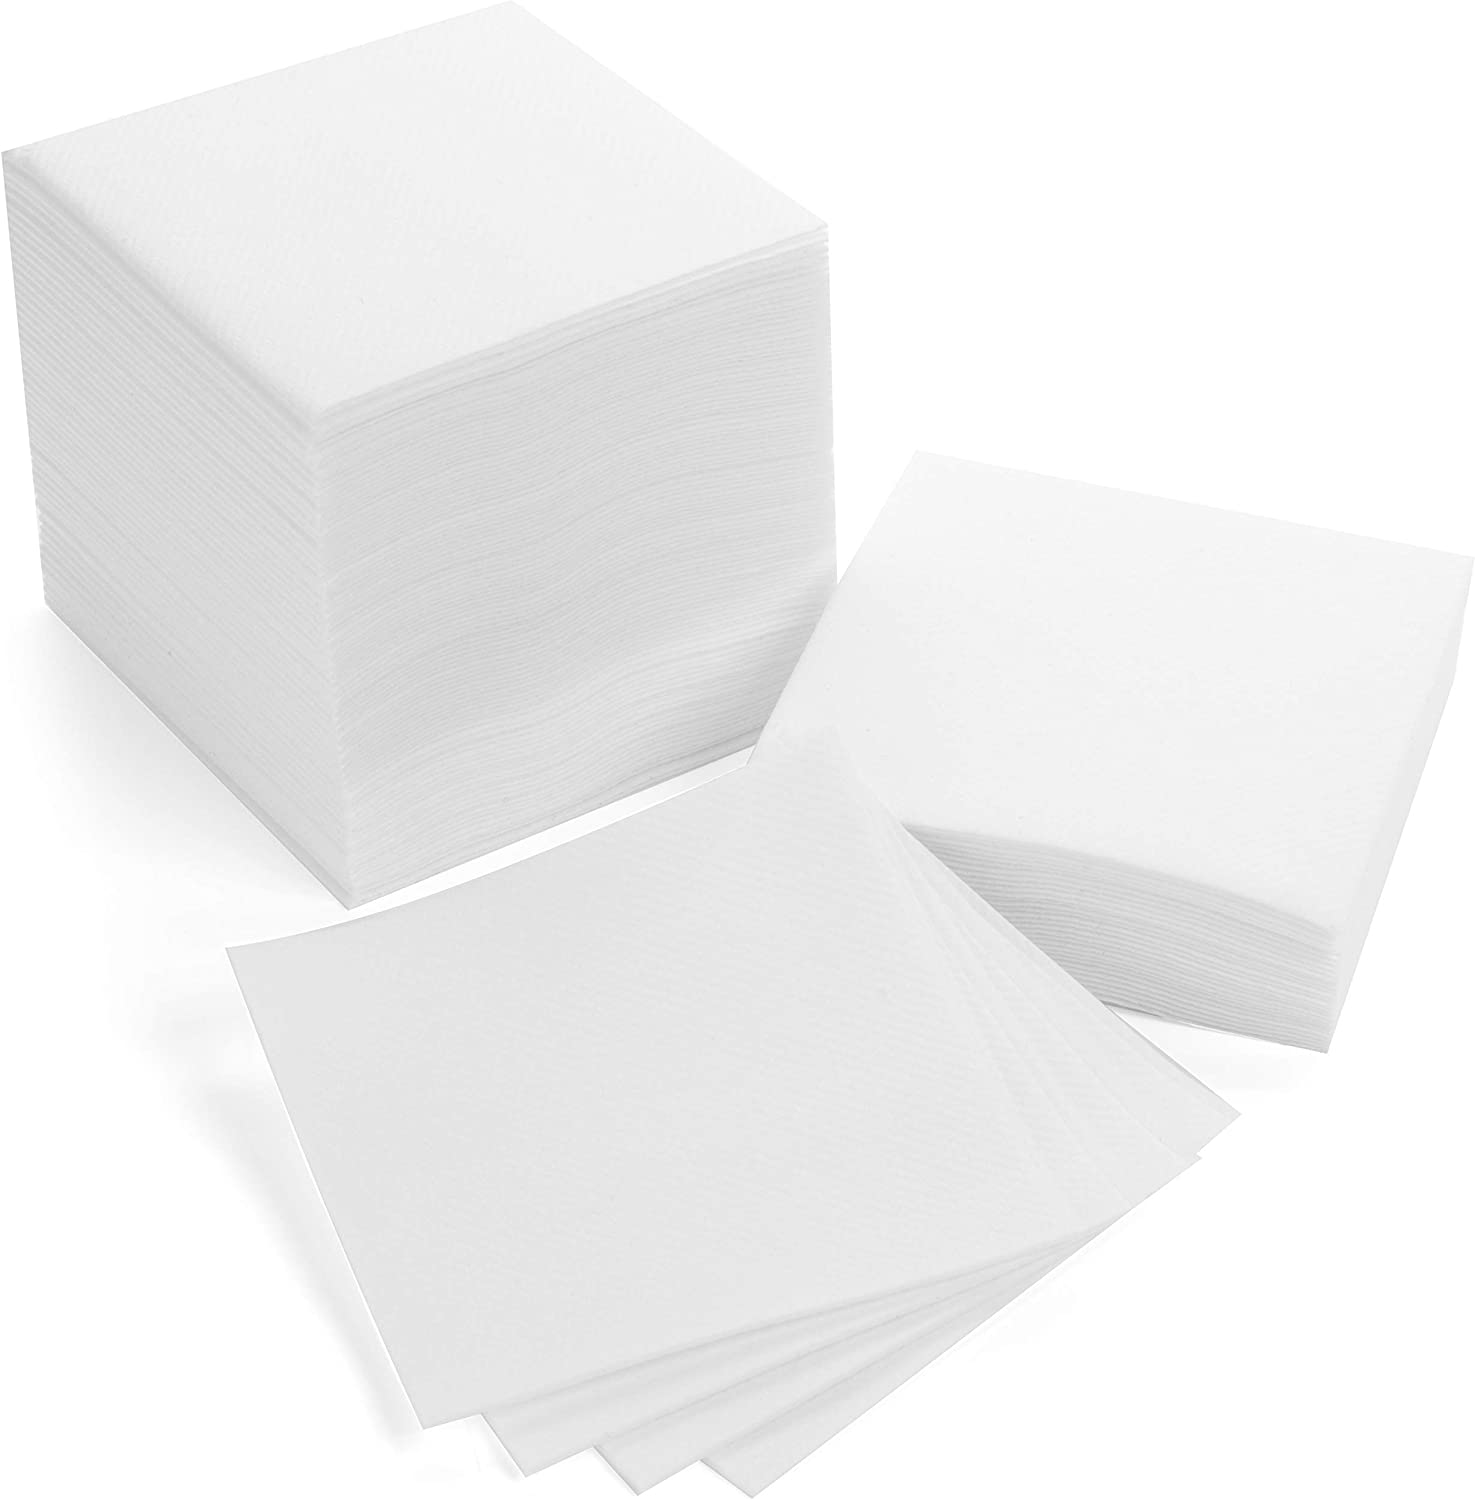 American Homestead Cocktail Napkins - Disposable Beverage/Bar Napkins - White Linen-Like Square Napkins - Eco-Friendly & Compostable - Everyday Use, Party or Wedding 4.75